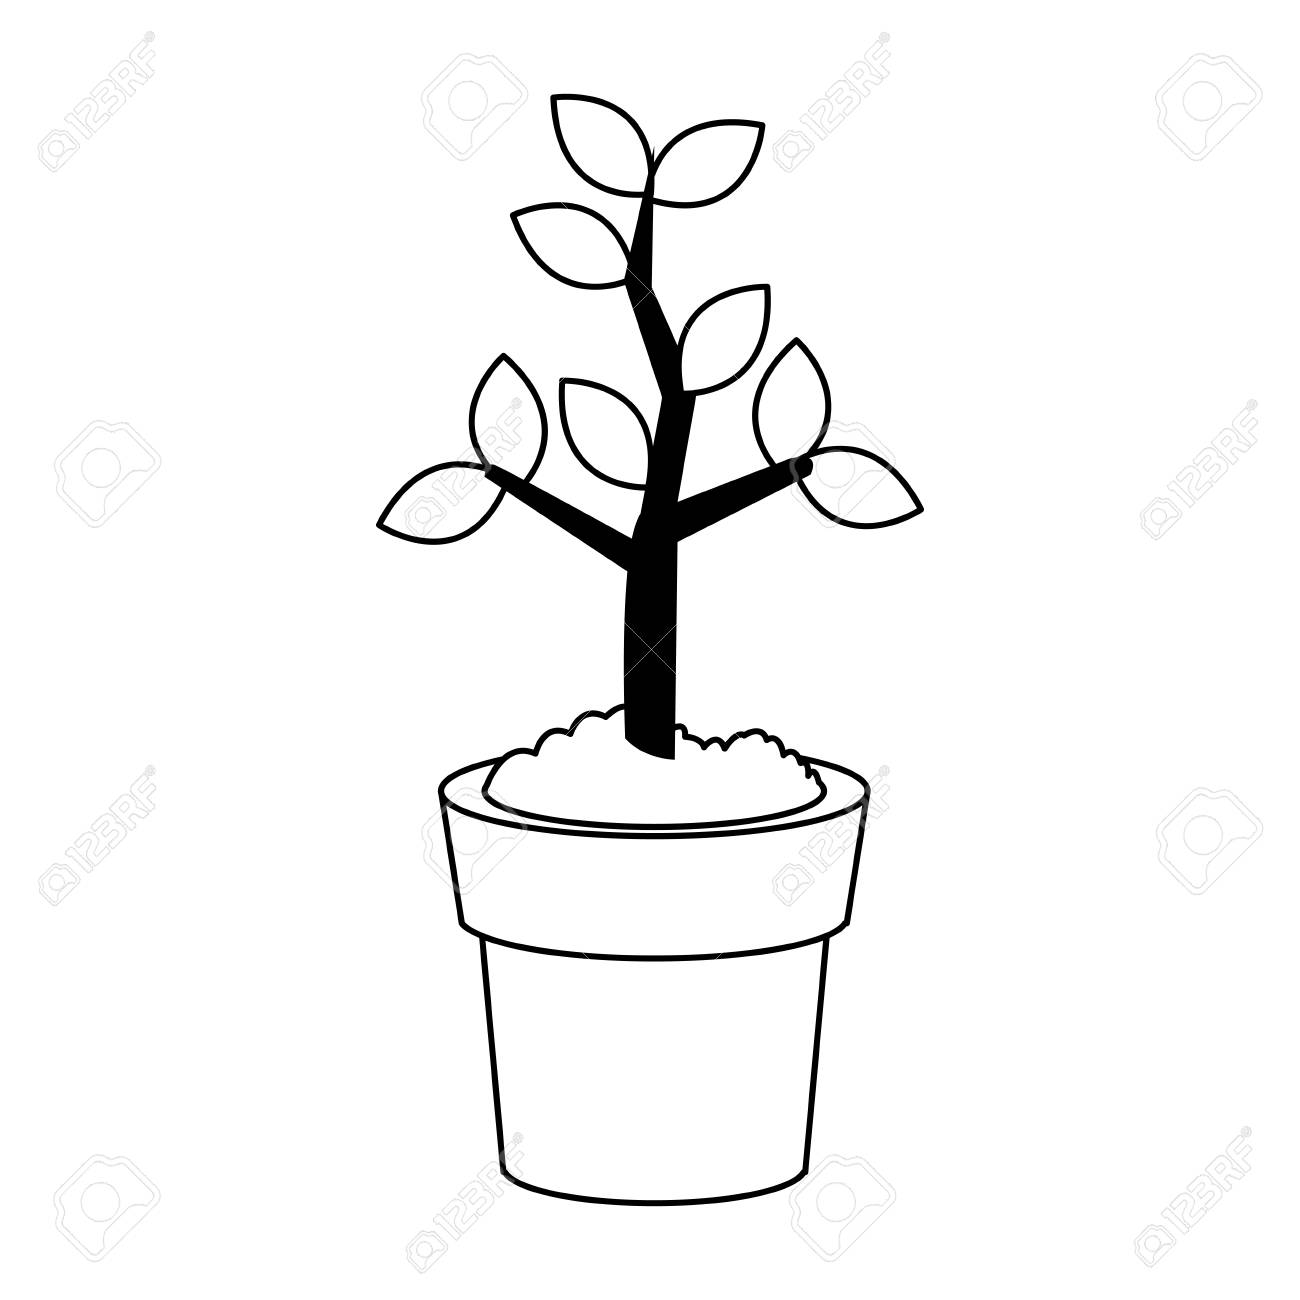 Plant growing on pot on black and white colors vector illustration.